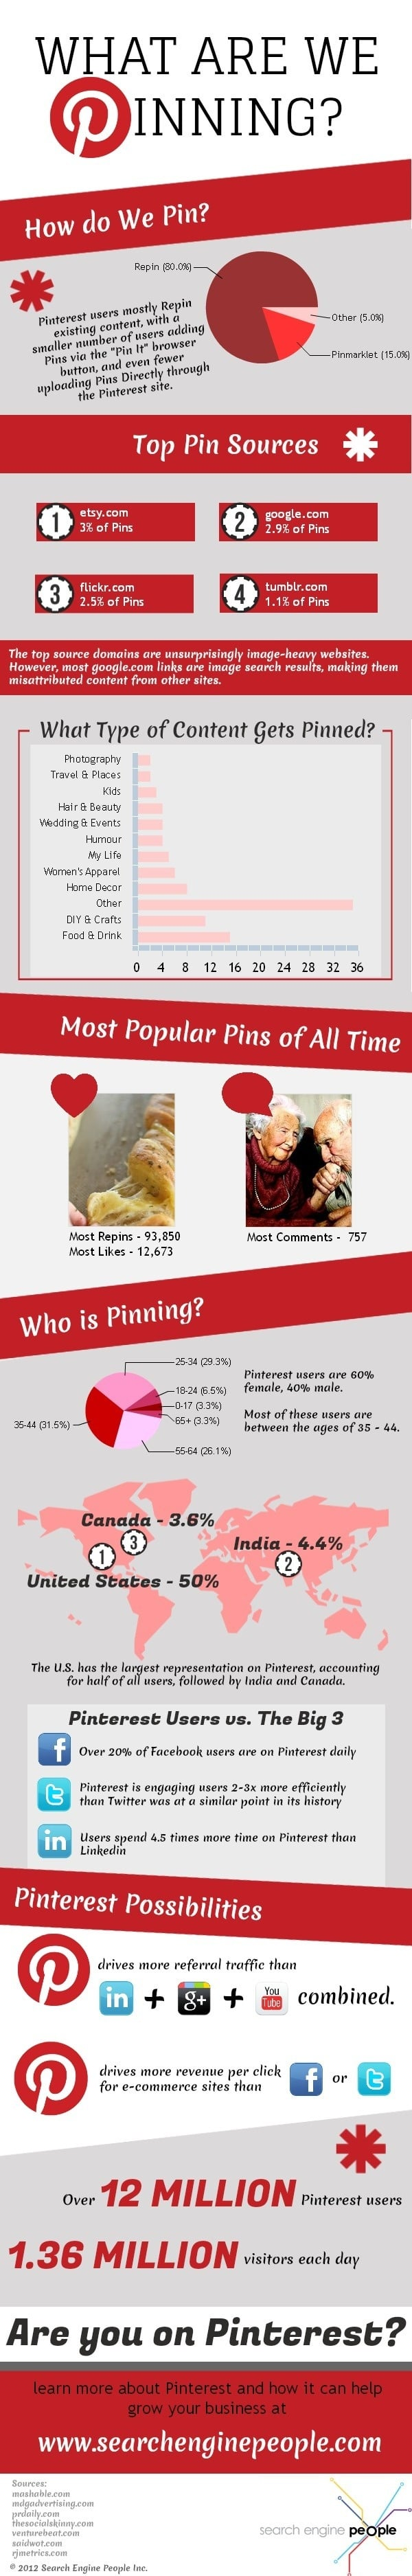 Pinterest Update: What Are We Pinning? [Infographic]